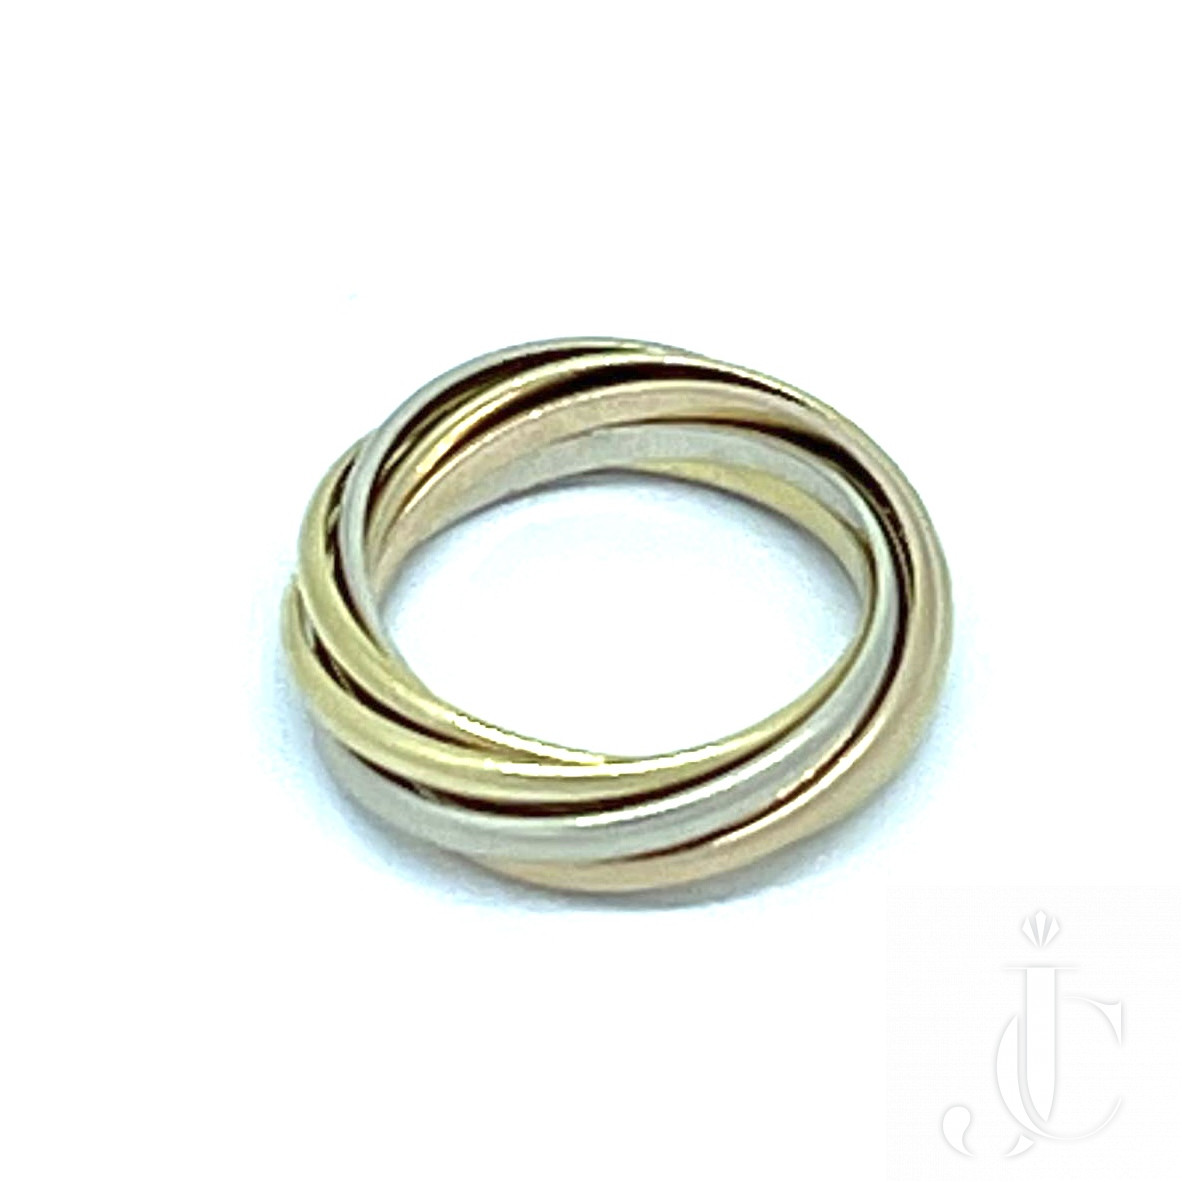 Cartier 7 band Tri color rolling ring. Size 51/2 .